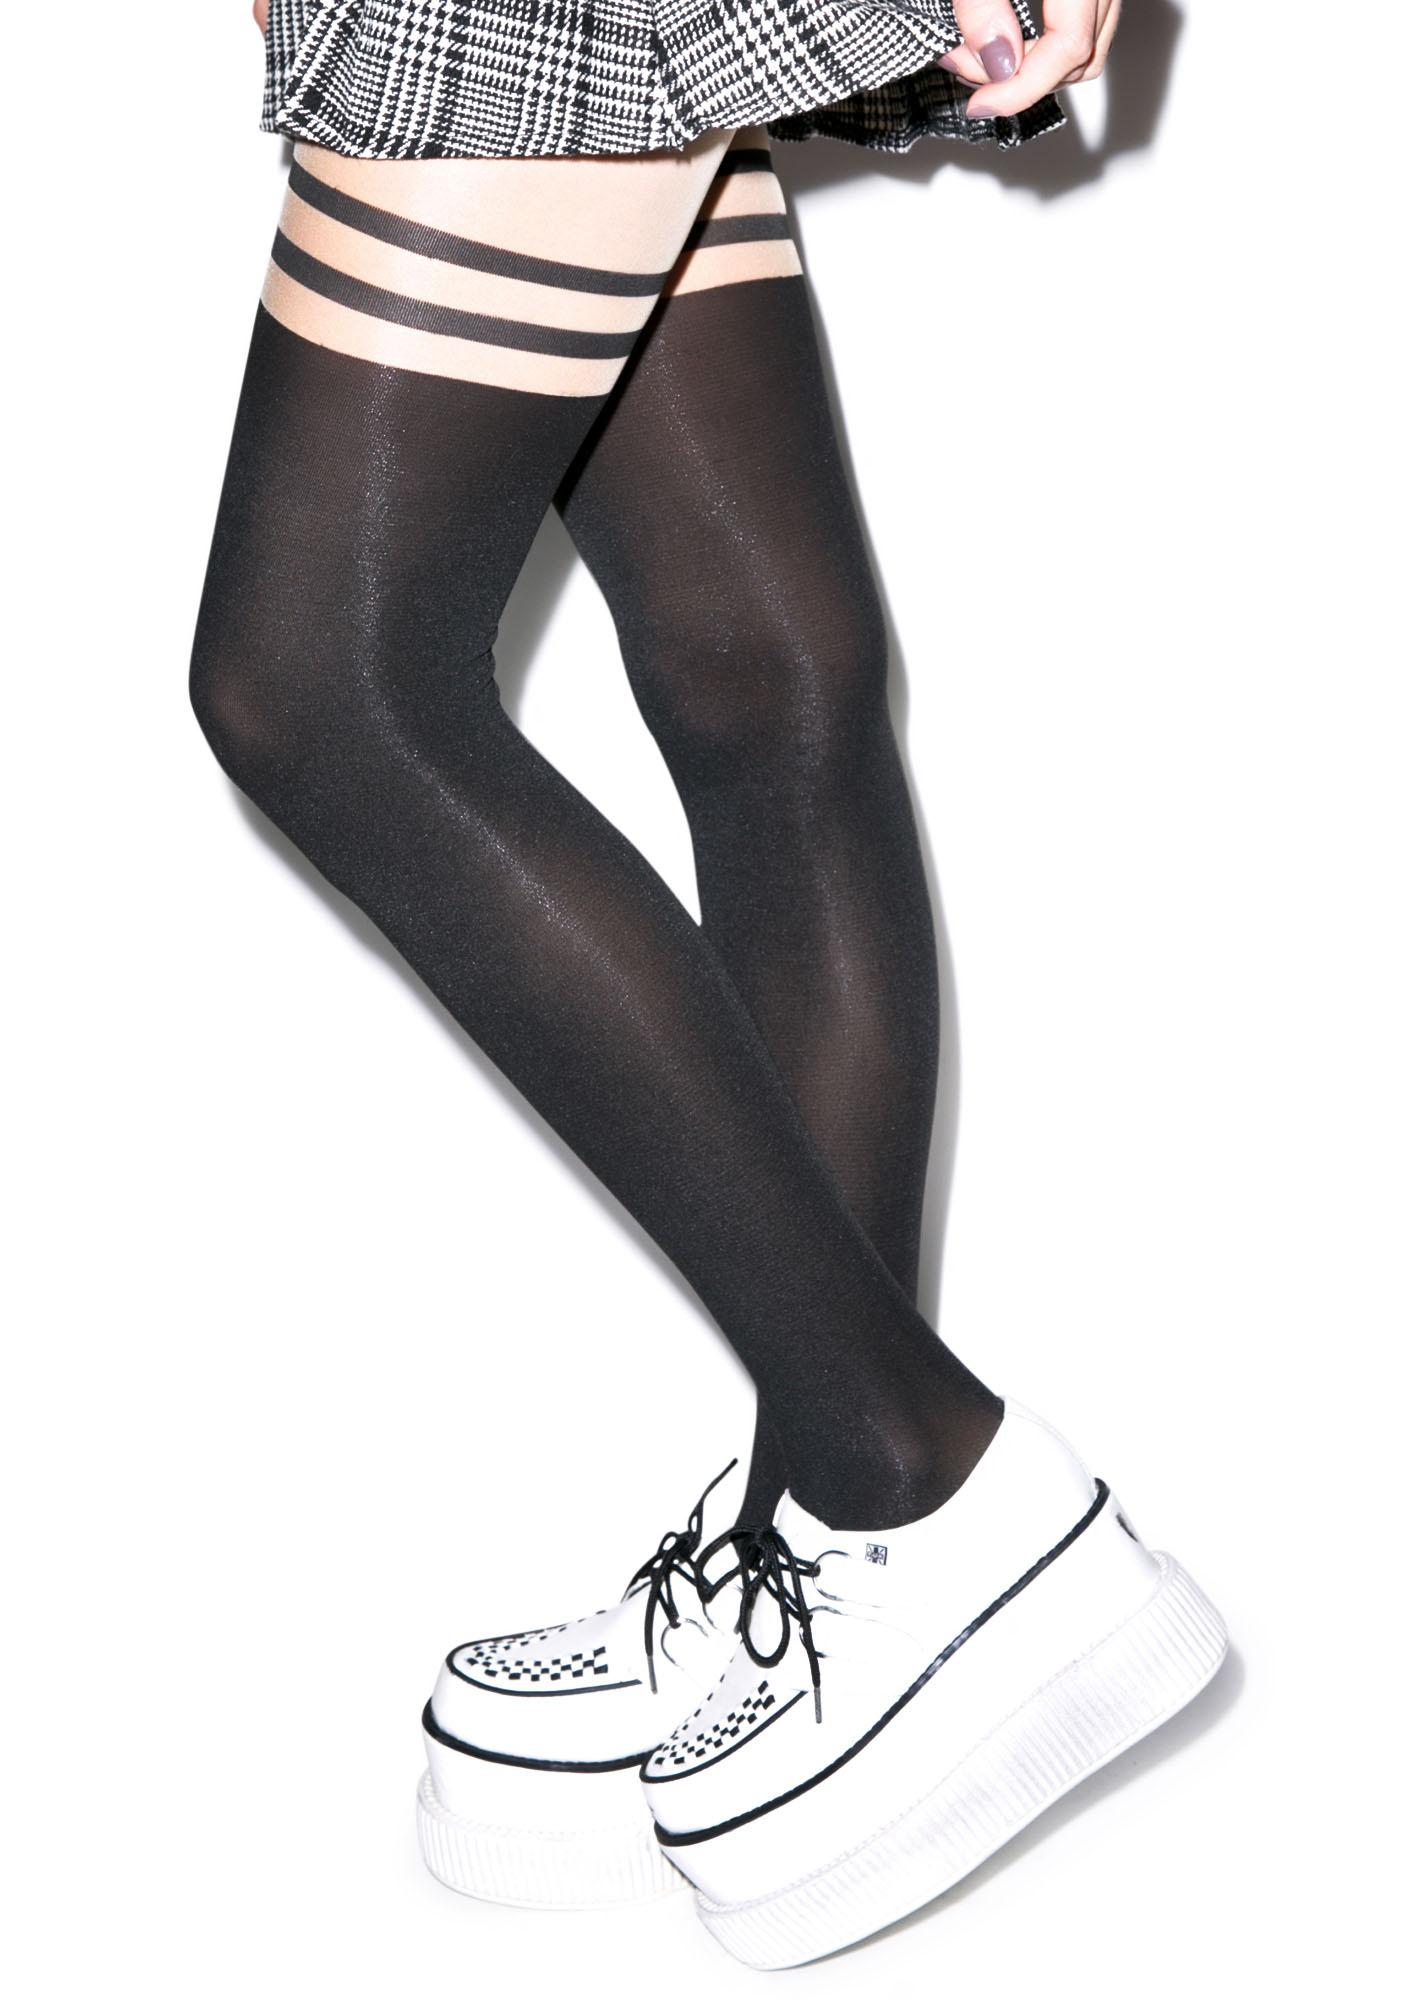 Cheerleader Tights